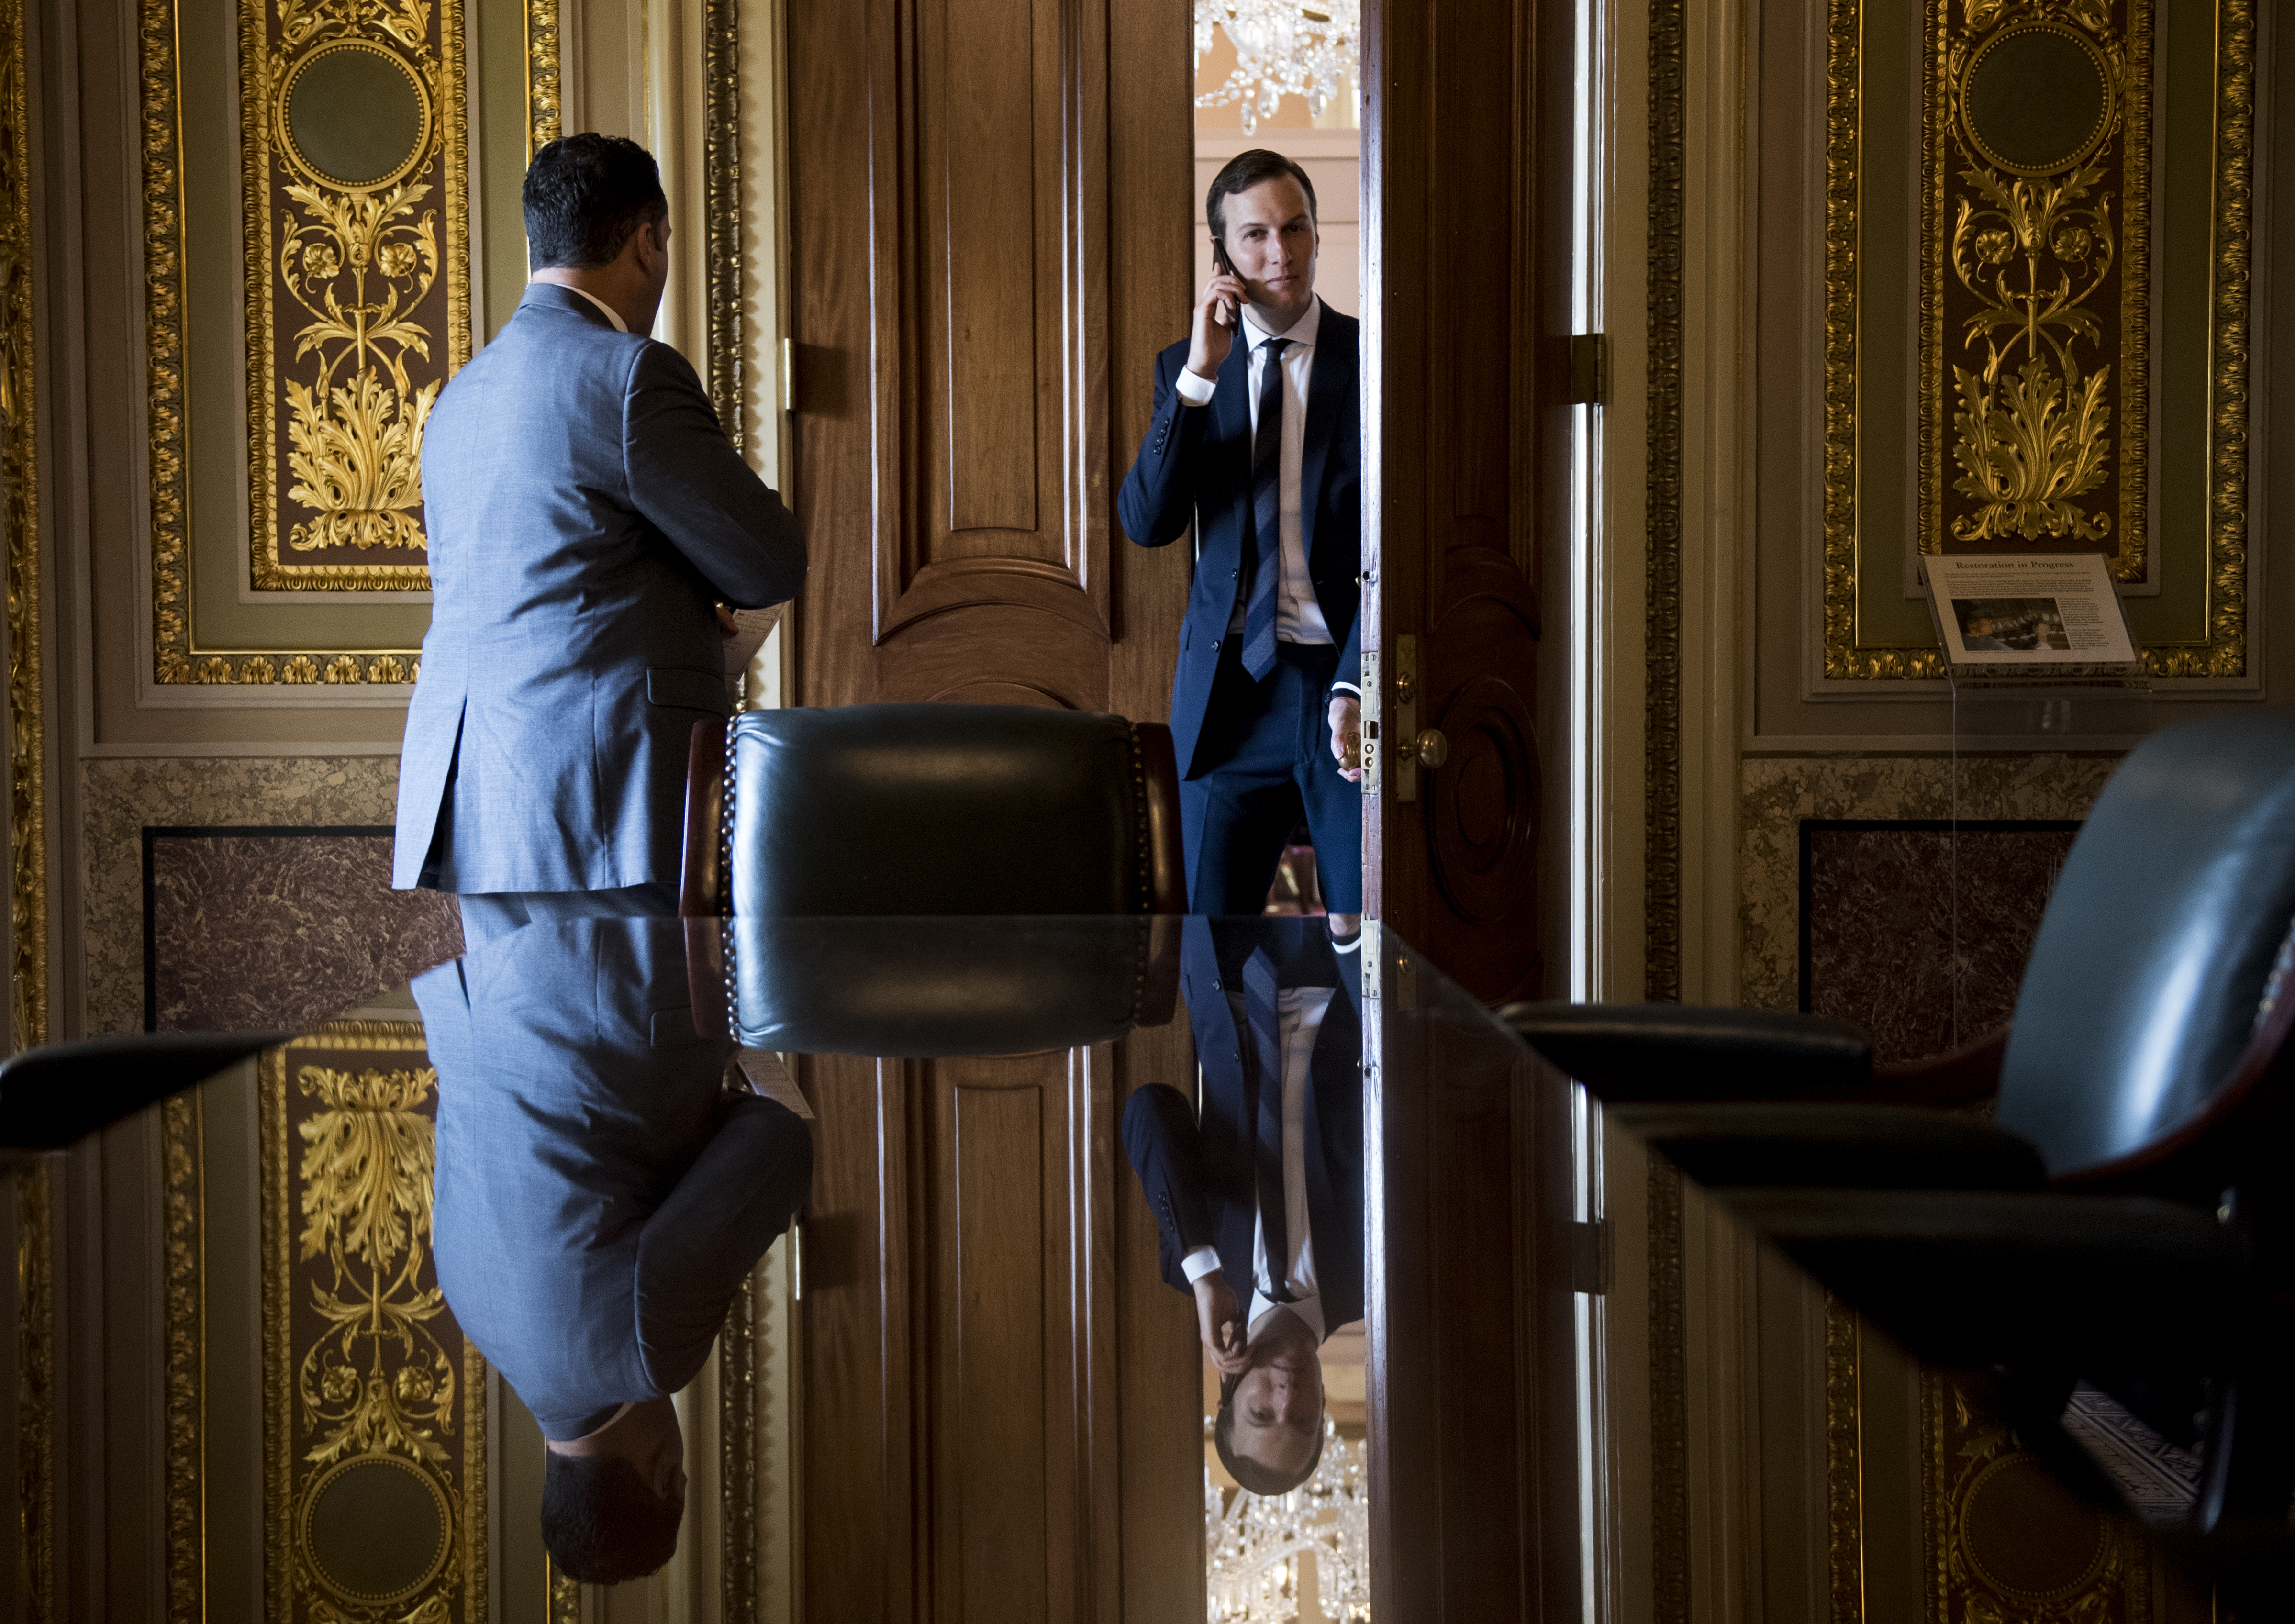 UNITED STATES - MAY 14: Jared Kushner, senior advisor and son in law to President Trump, steps out of the Vice President's office in the Senate Reception Room for a phone call after attending the Senate Republicans' weekly policy lunch in the Capitol on Tuesday, May 14, 2019. (Photo By Bill Clark/CQ Roll Call)